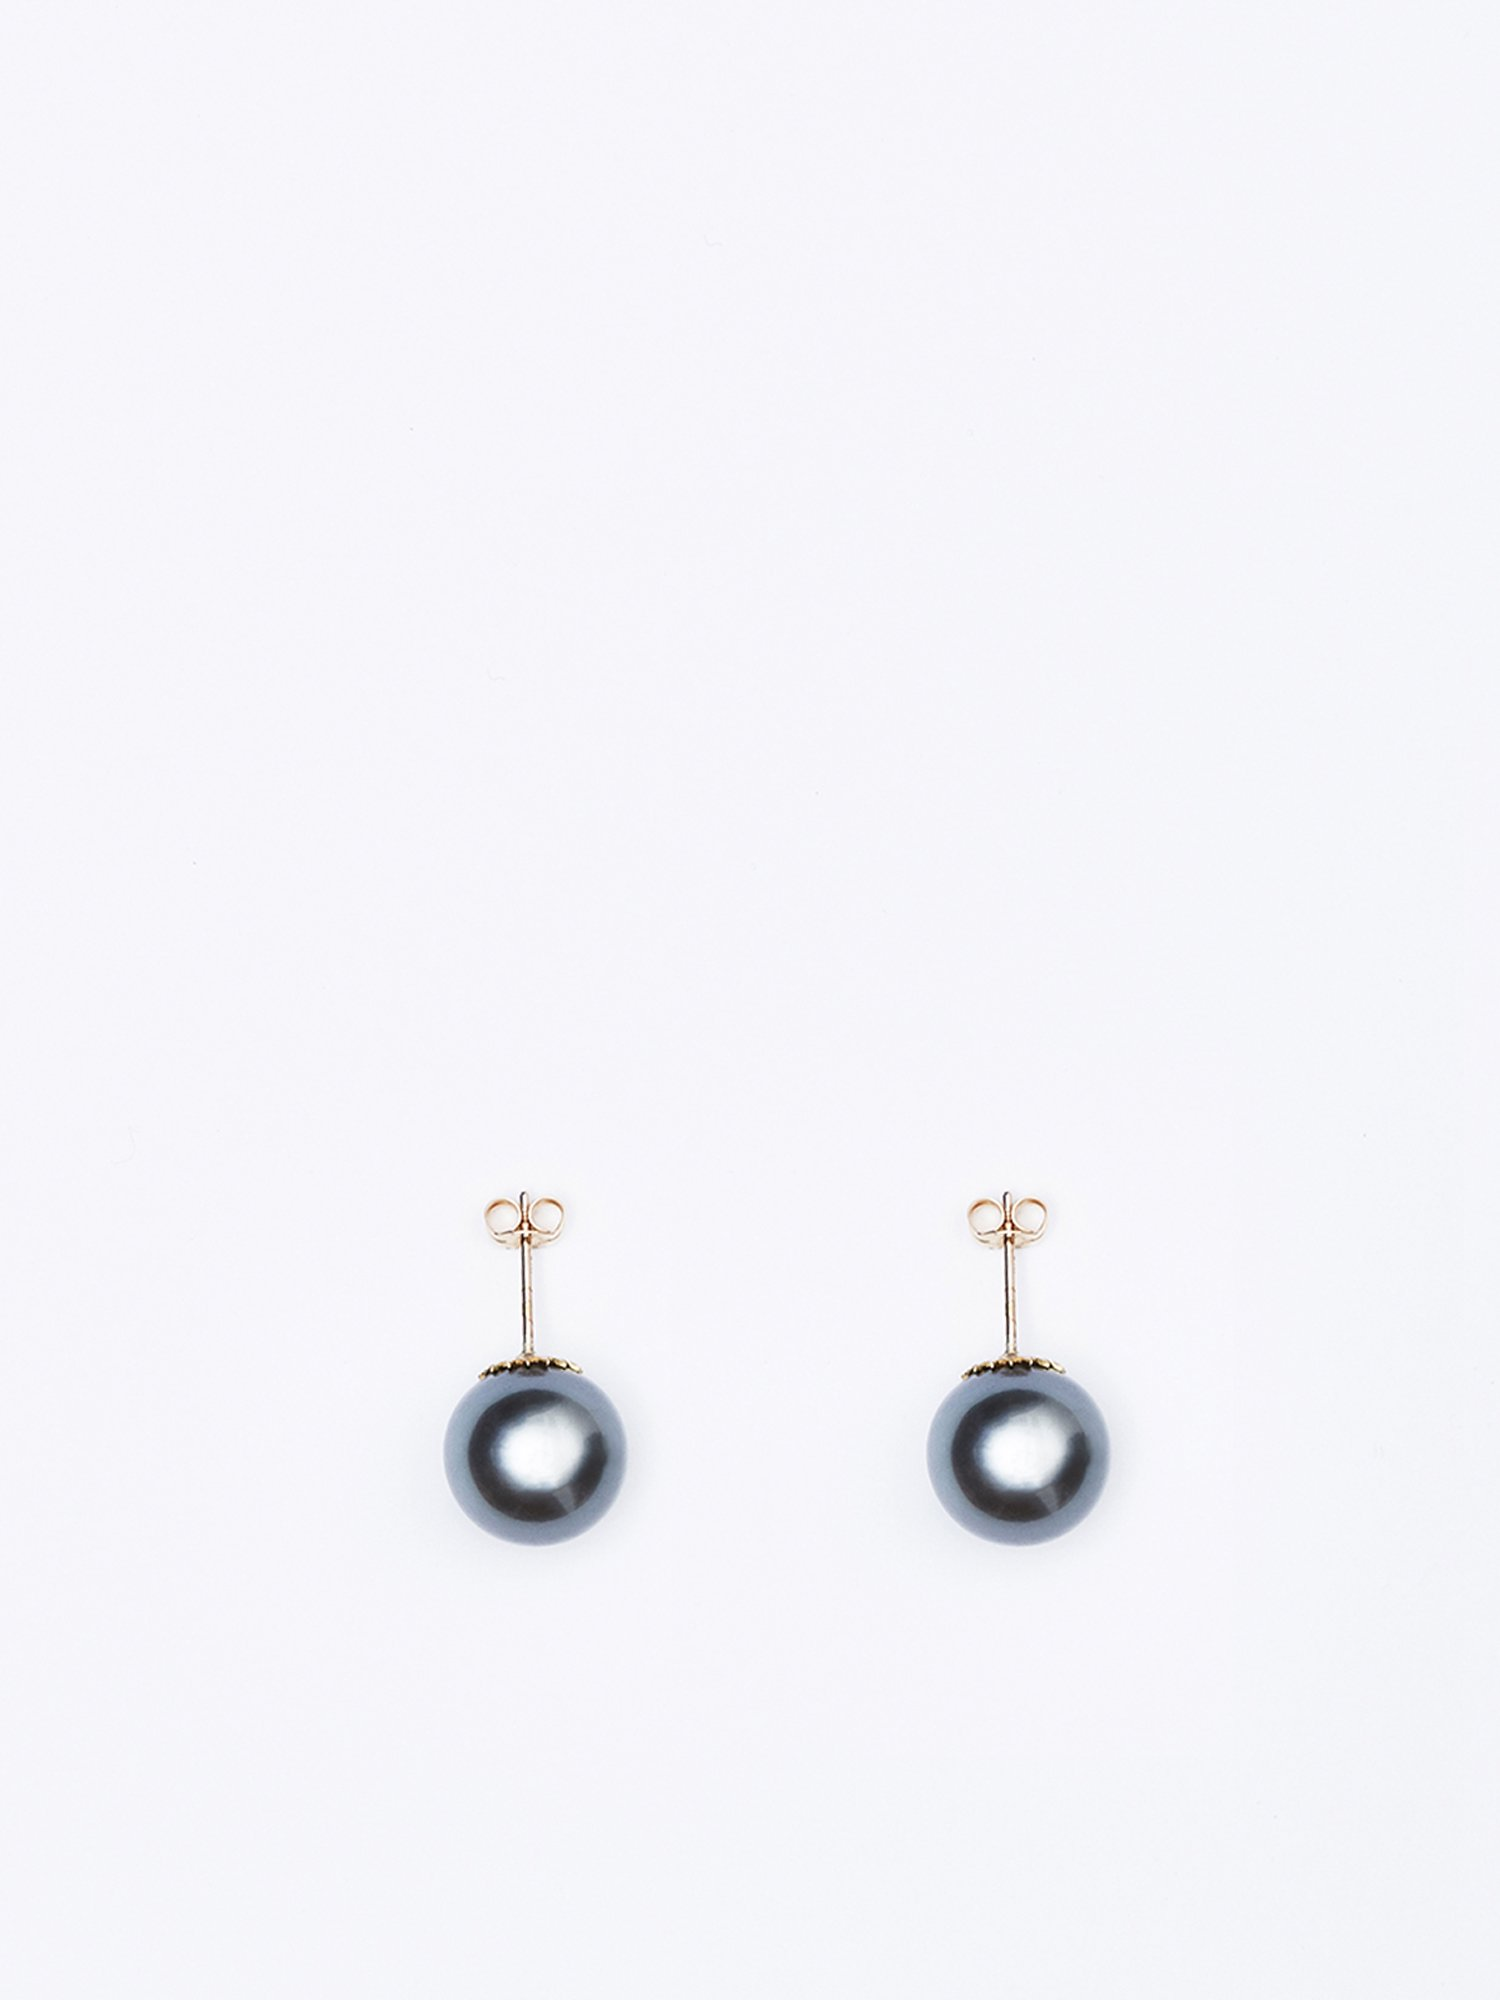 SOPHISTICATED VINTAGE / South sea pearl earrings